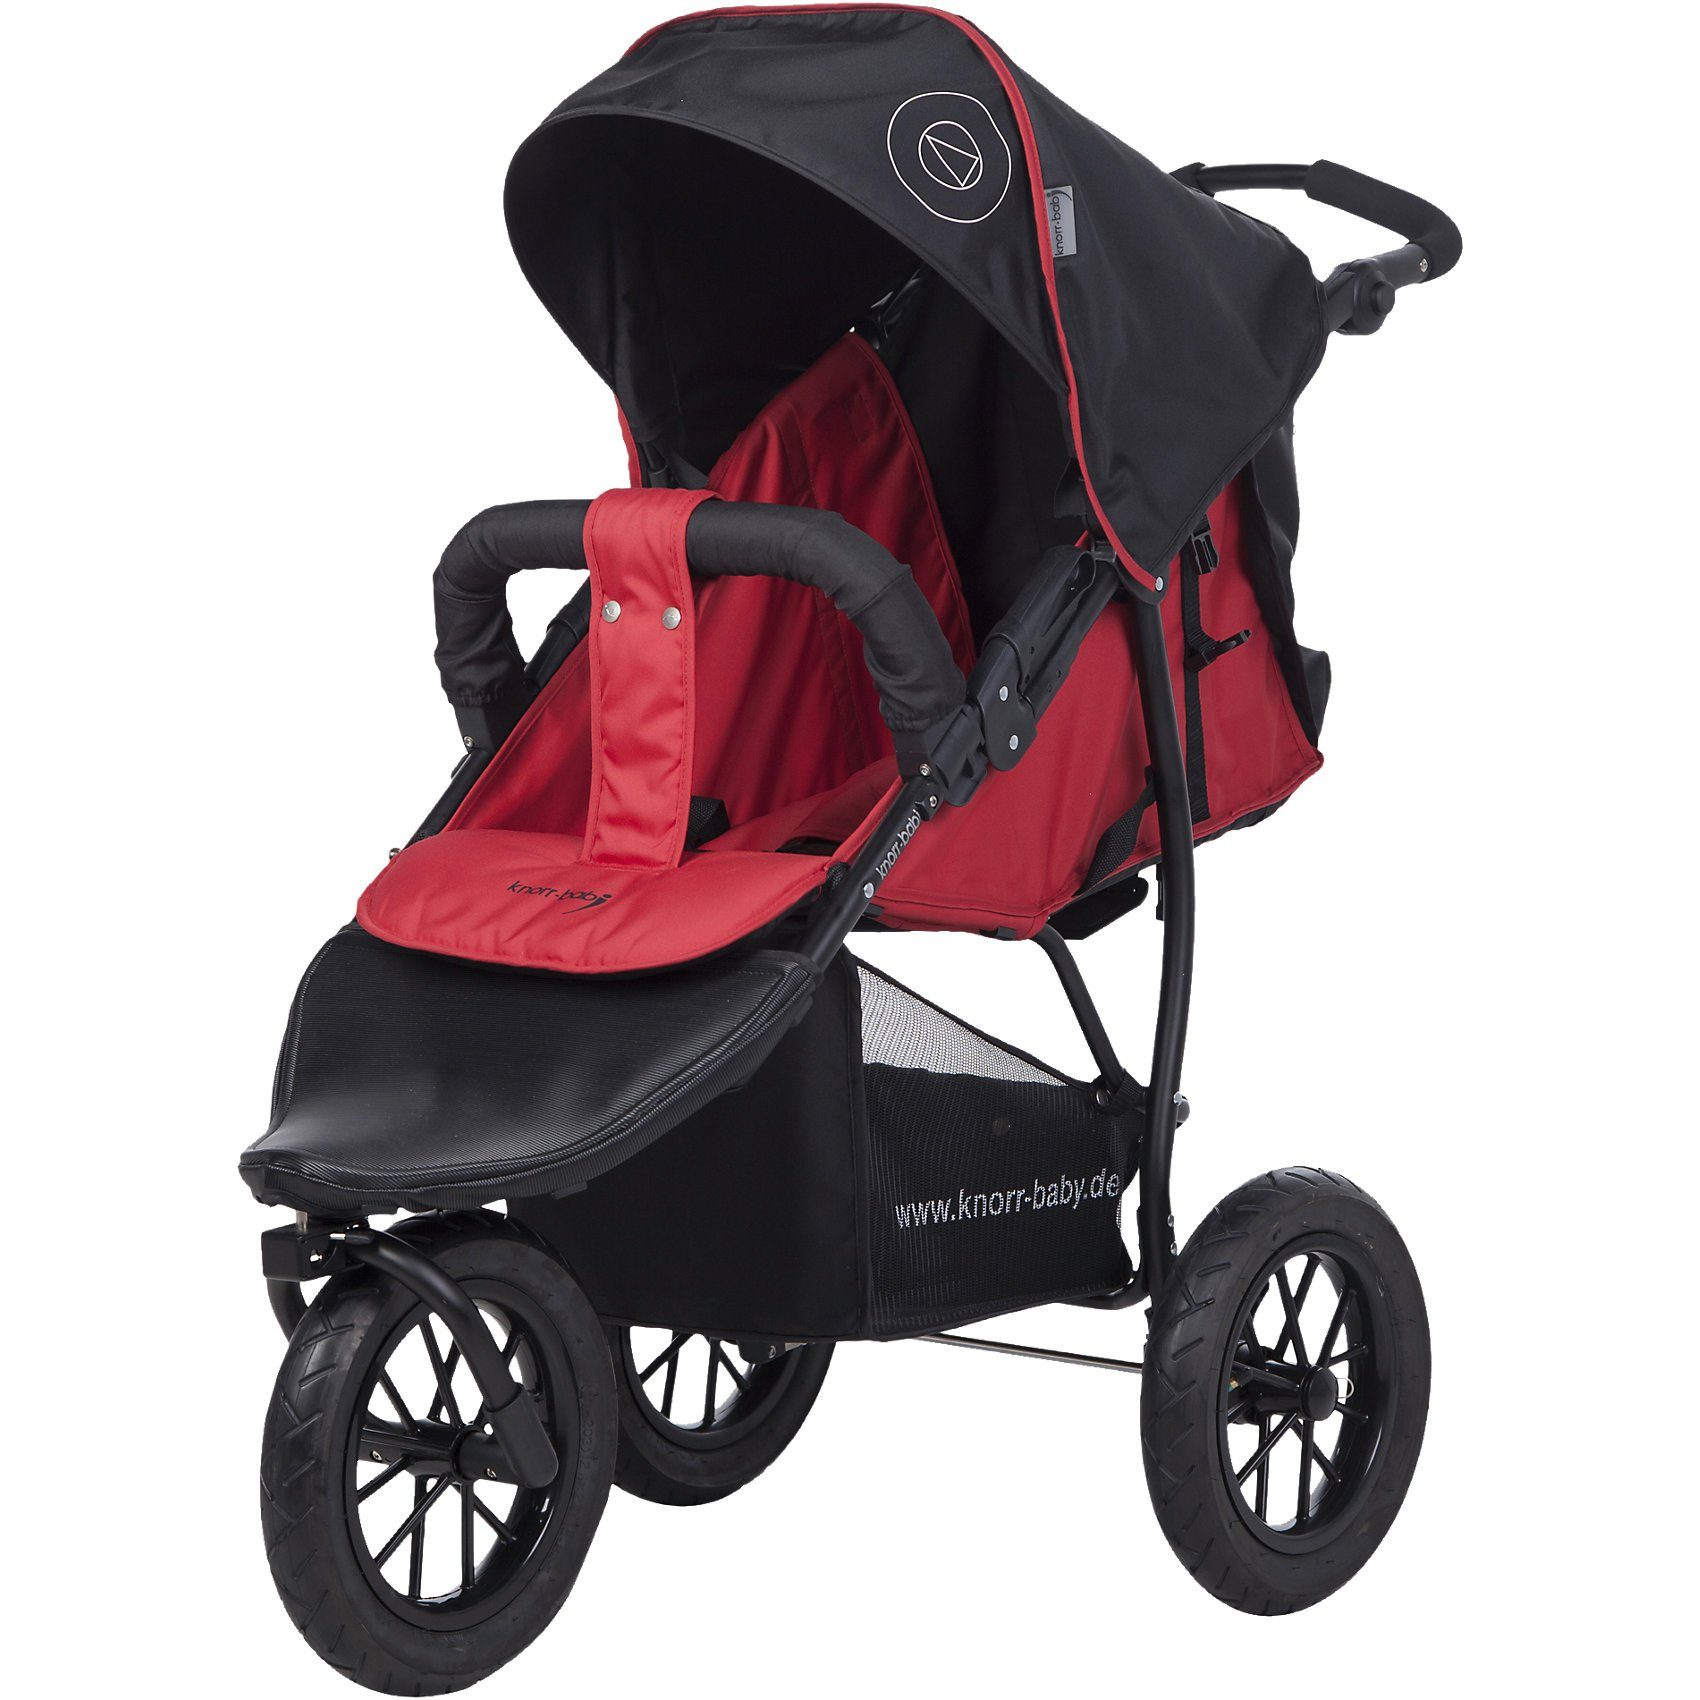 knorr-baby Jogger Joggy S Happy Colour mit Schlummerverdeck, rot